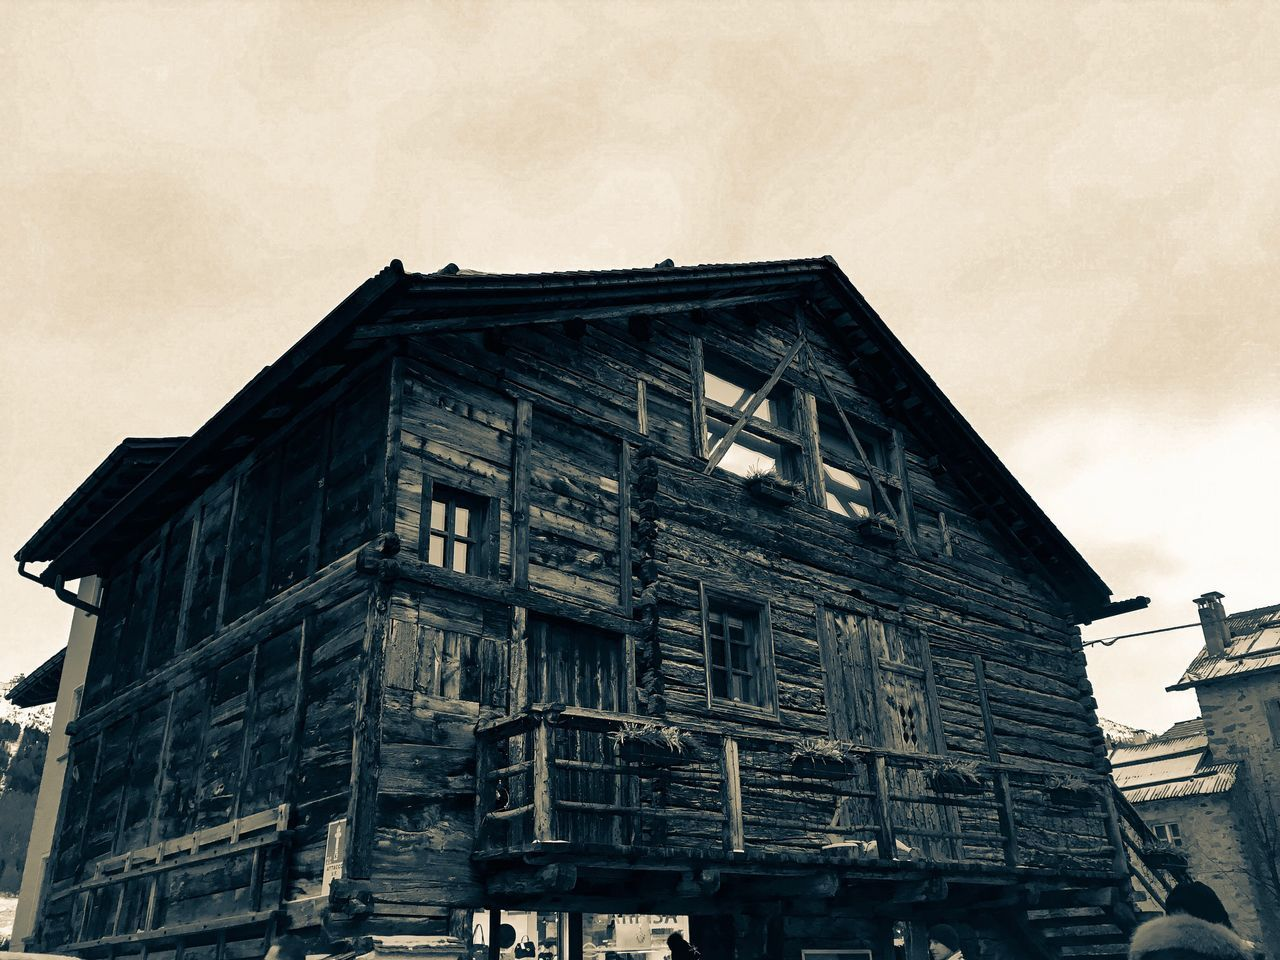 Building Exterior Architecture Built Structure No People Low Angle View Sky Outdoors Day 2017 Livigno Mountain Wintertime Chalet Picoftheday Photo Photography